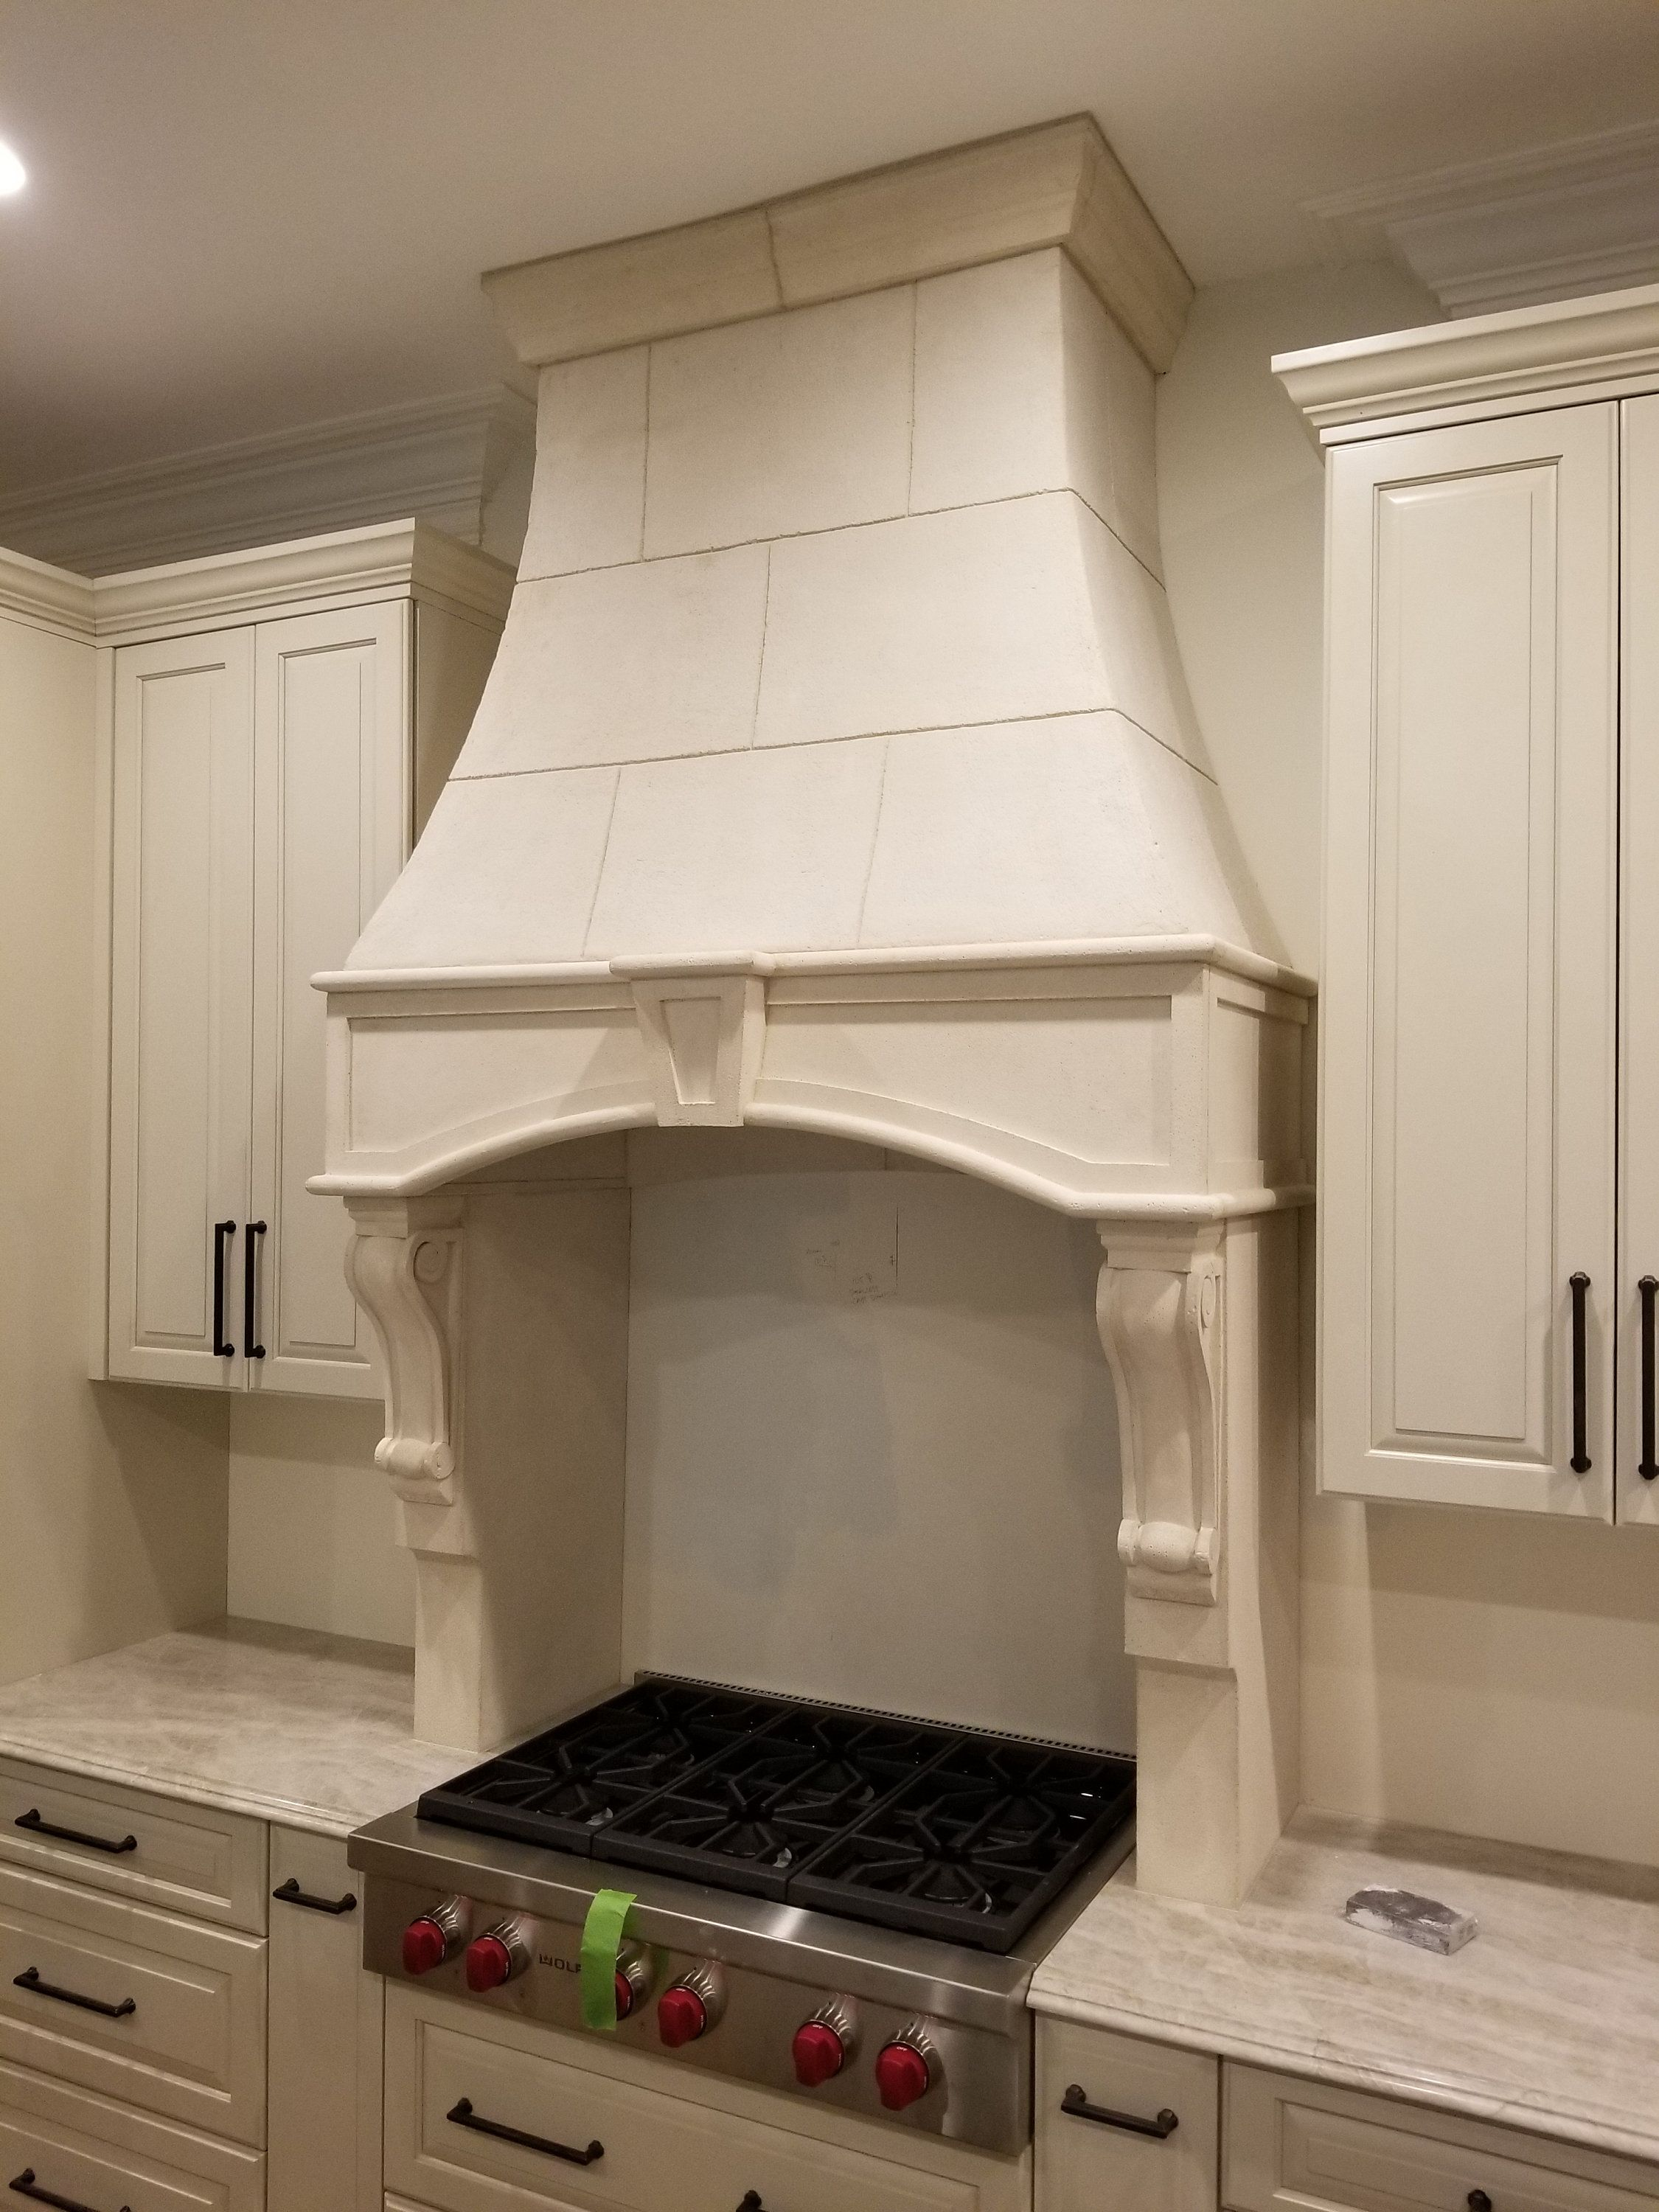 Kitchen Stone Stove Hood Etsy In 2021 Stove Hoods Kitchen Vent Hood Antique White Kitchen